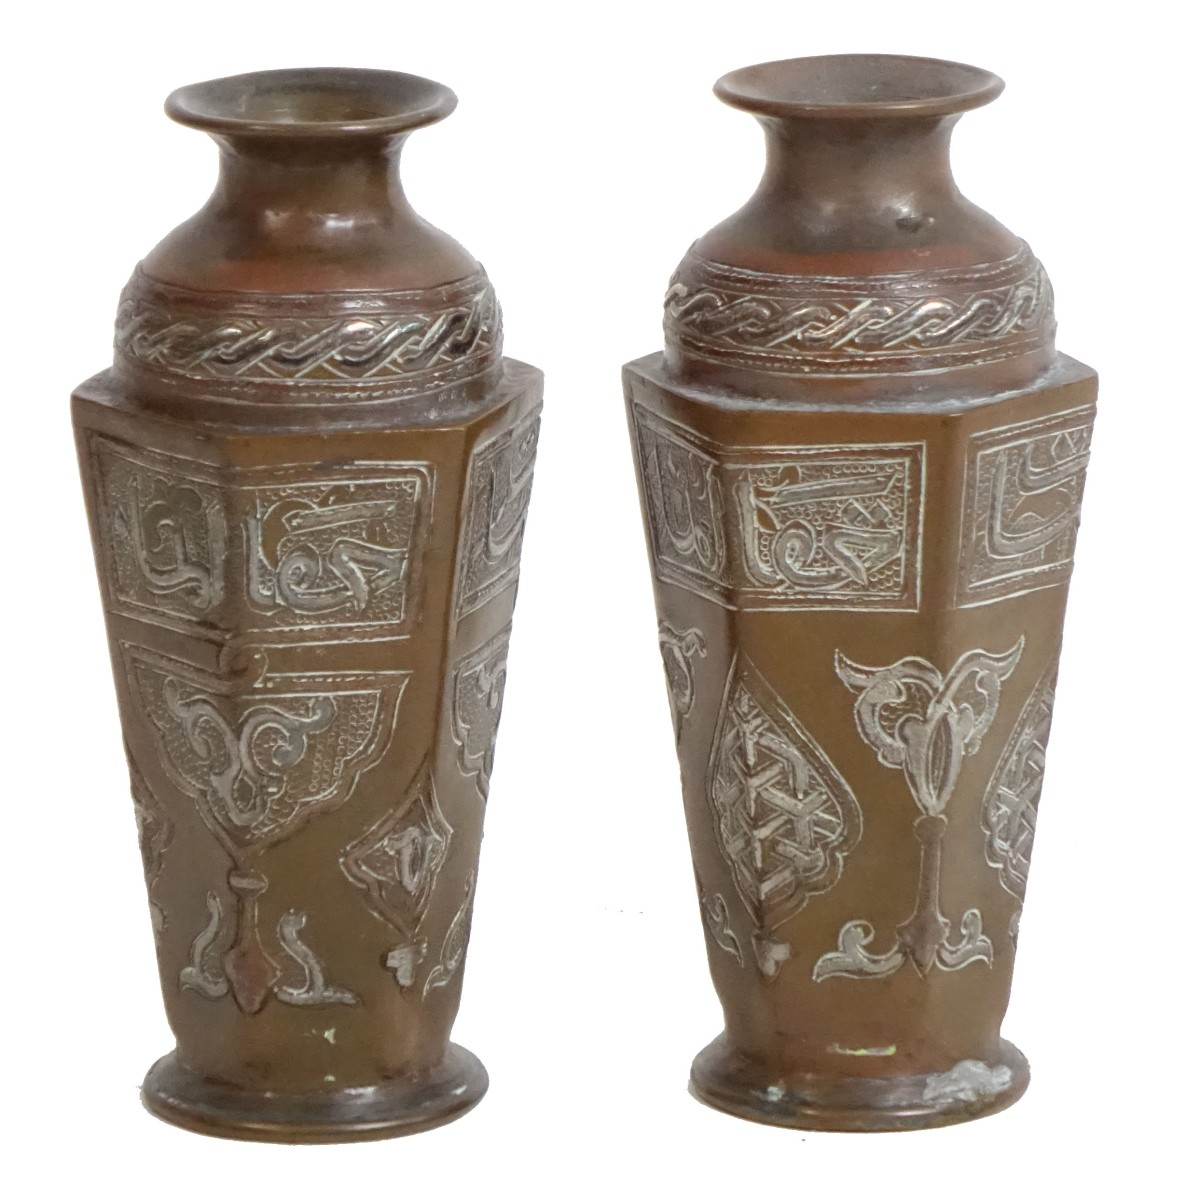 Pair of Islamic Vases